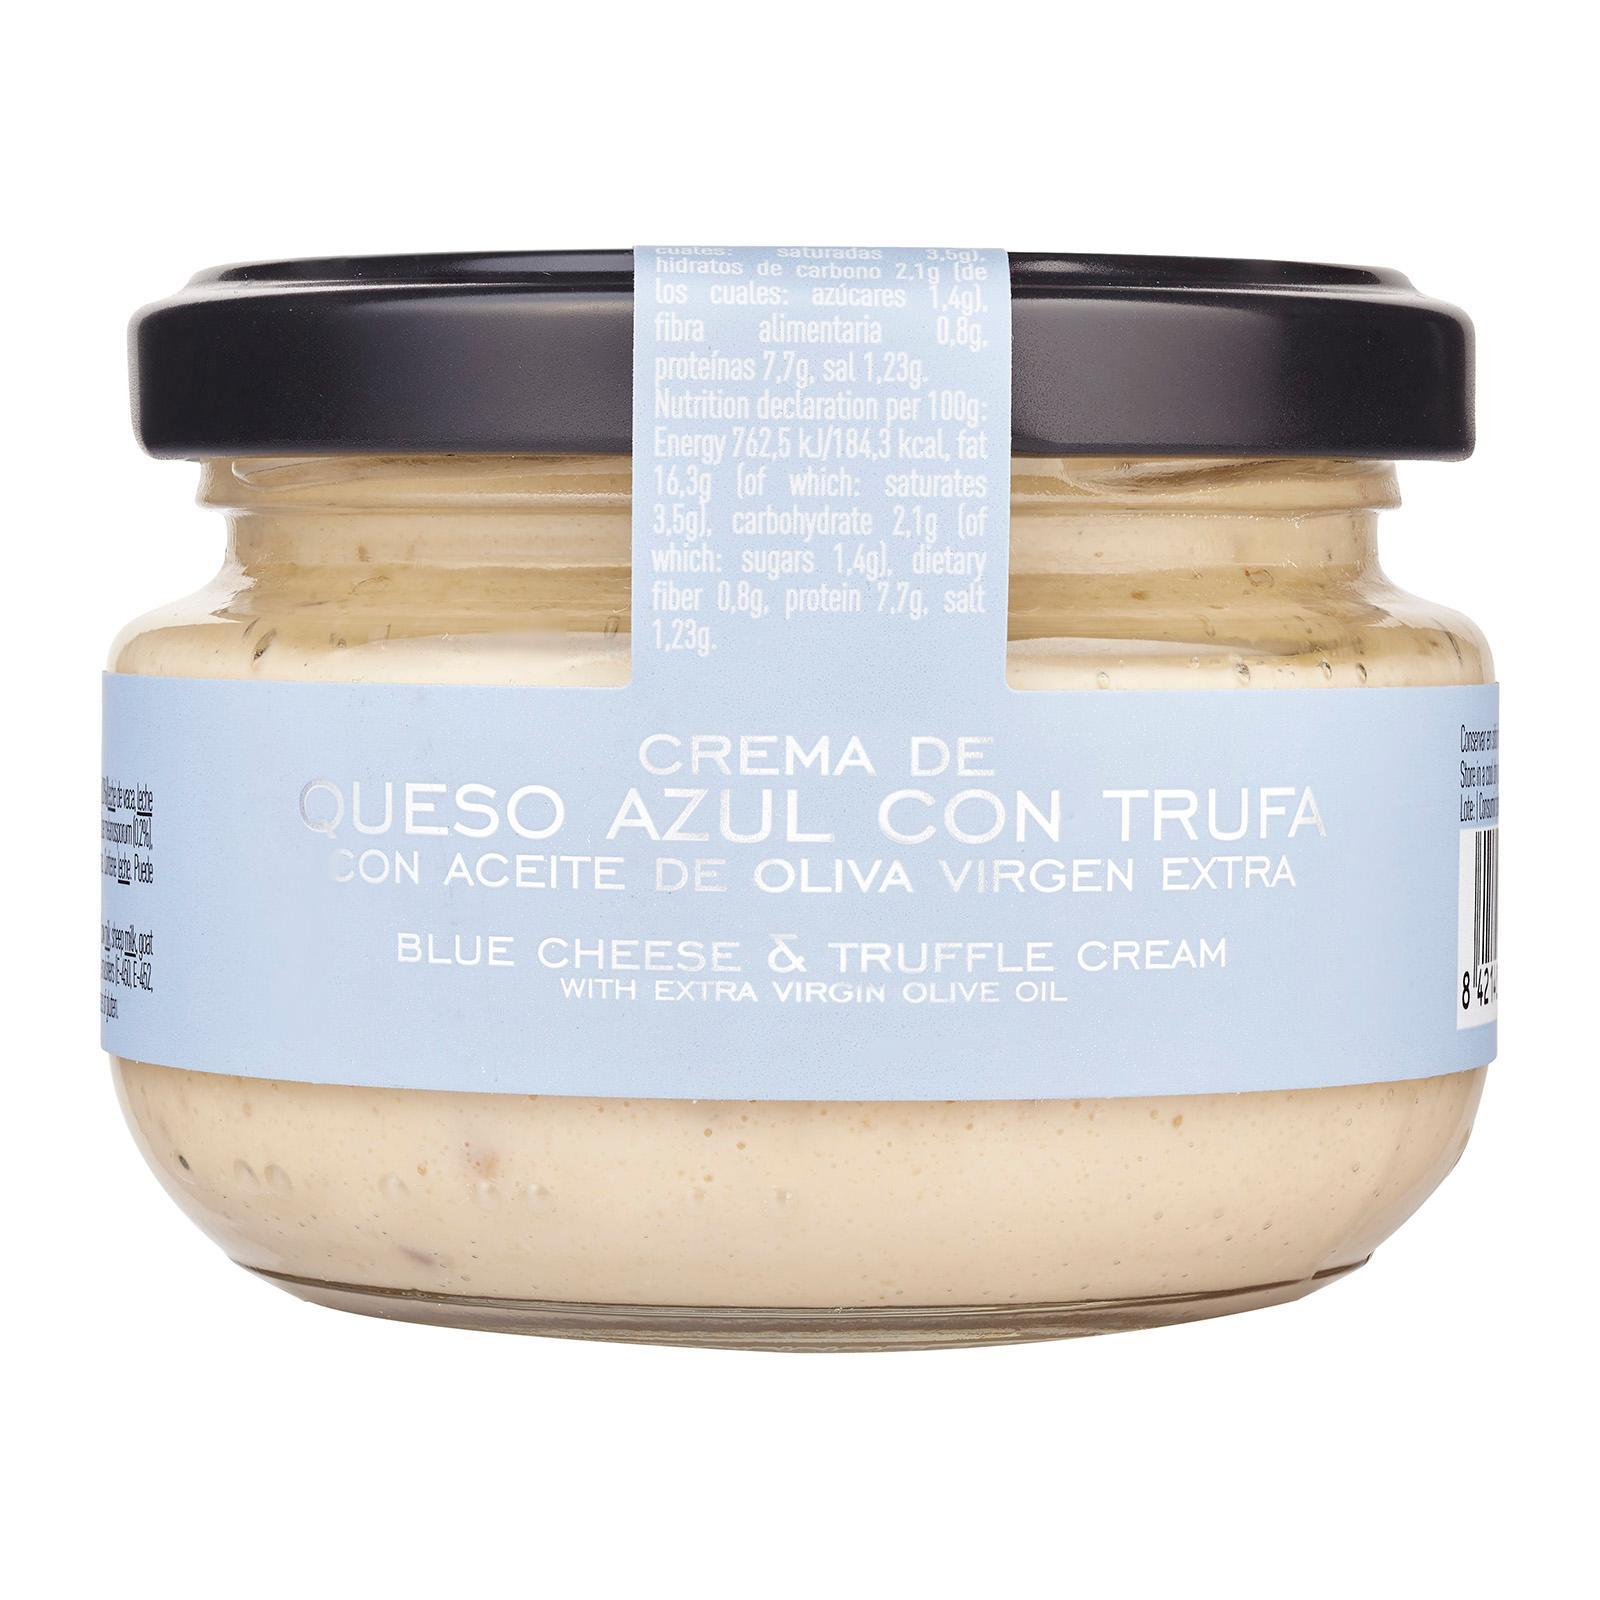 La Chinata Truffle and Blue Cheese Spanish Spread - By TANINOS